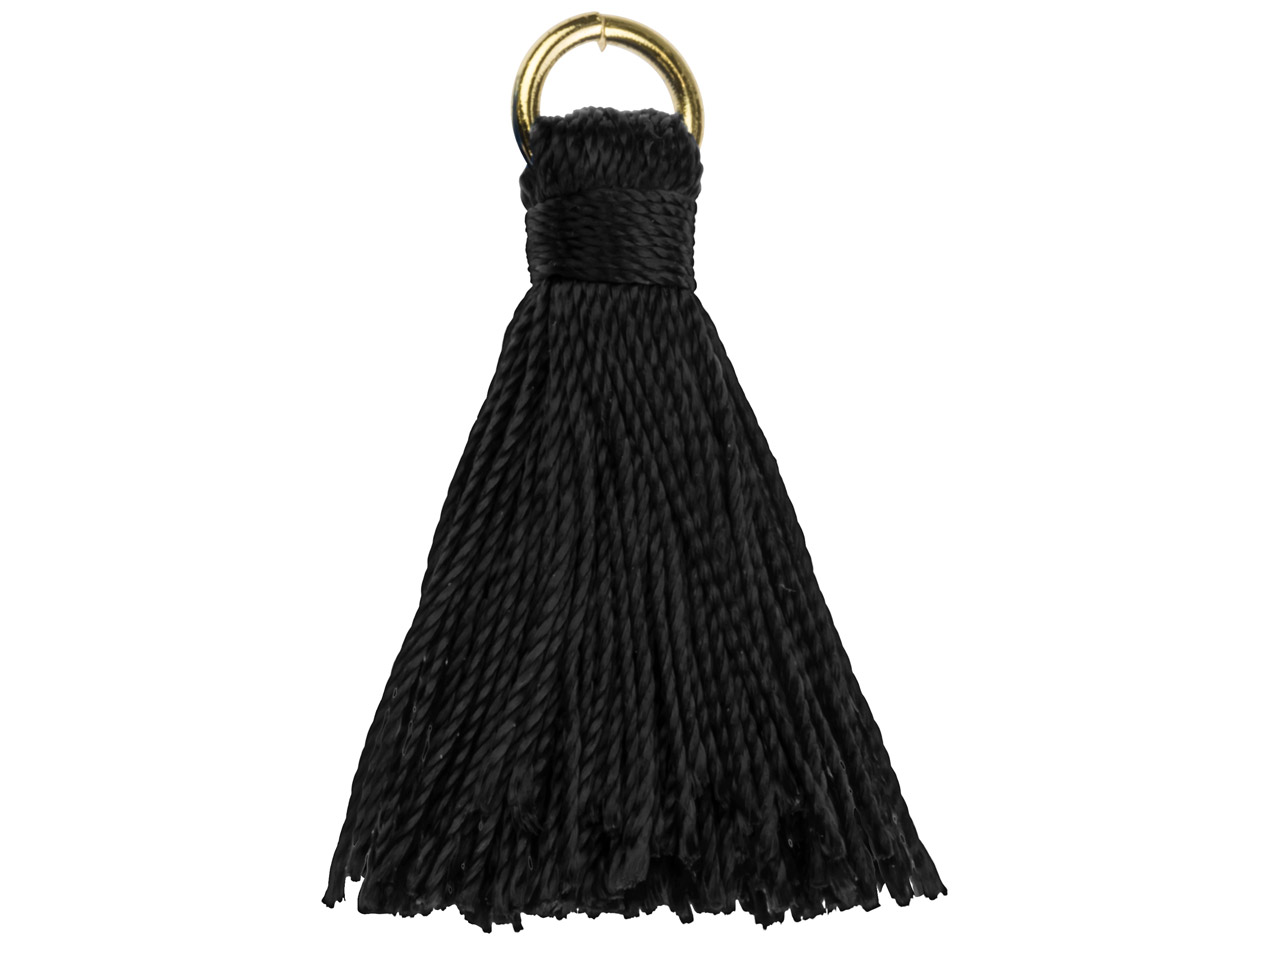 Black Nylon Tassel With Gold Plated Jump Ring Pack of 5